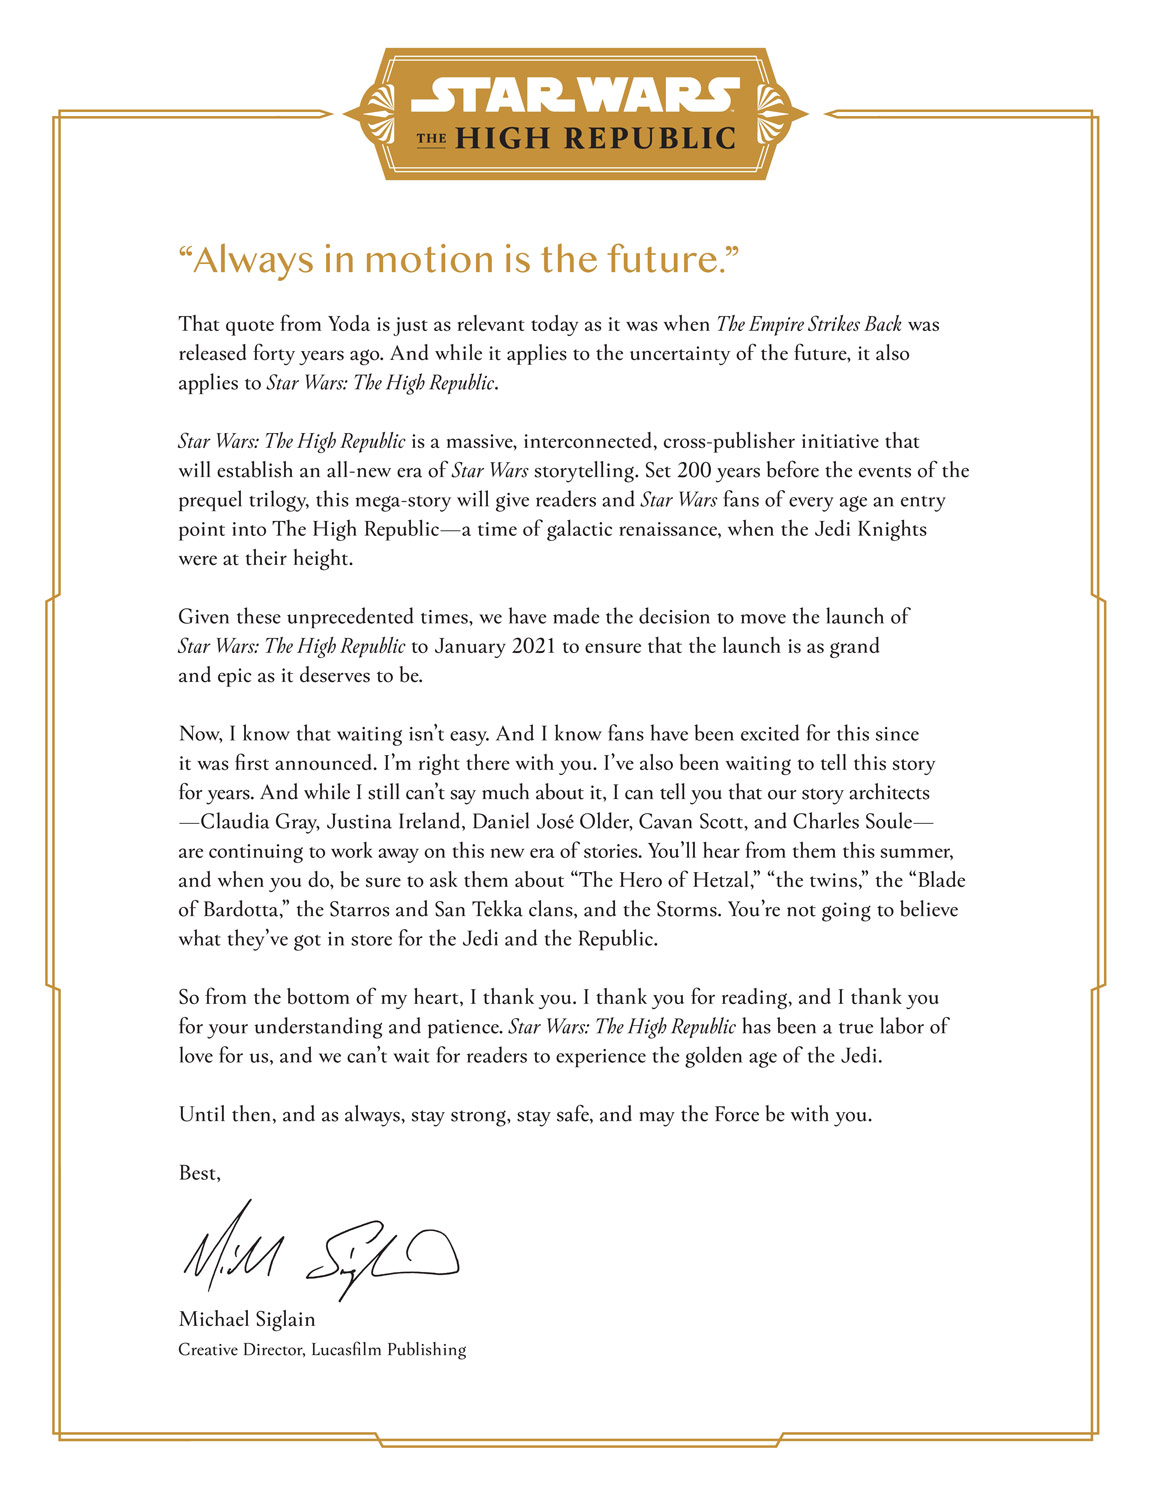 Letter from Lucasfilm's Michael Siglain on Star Wars: The High Republic.